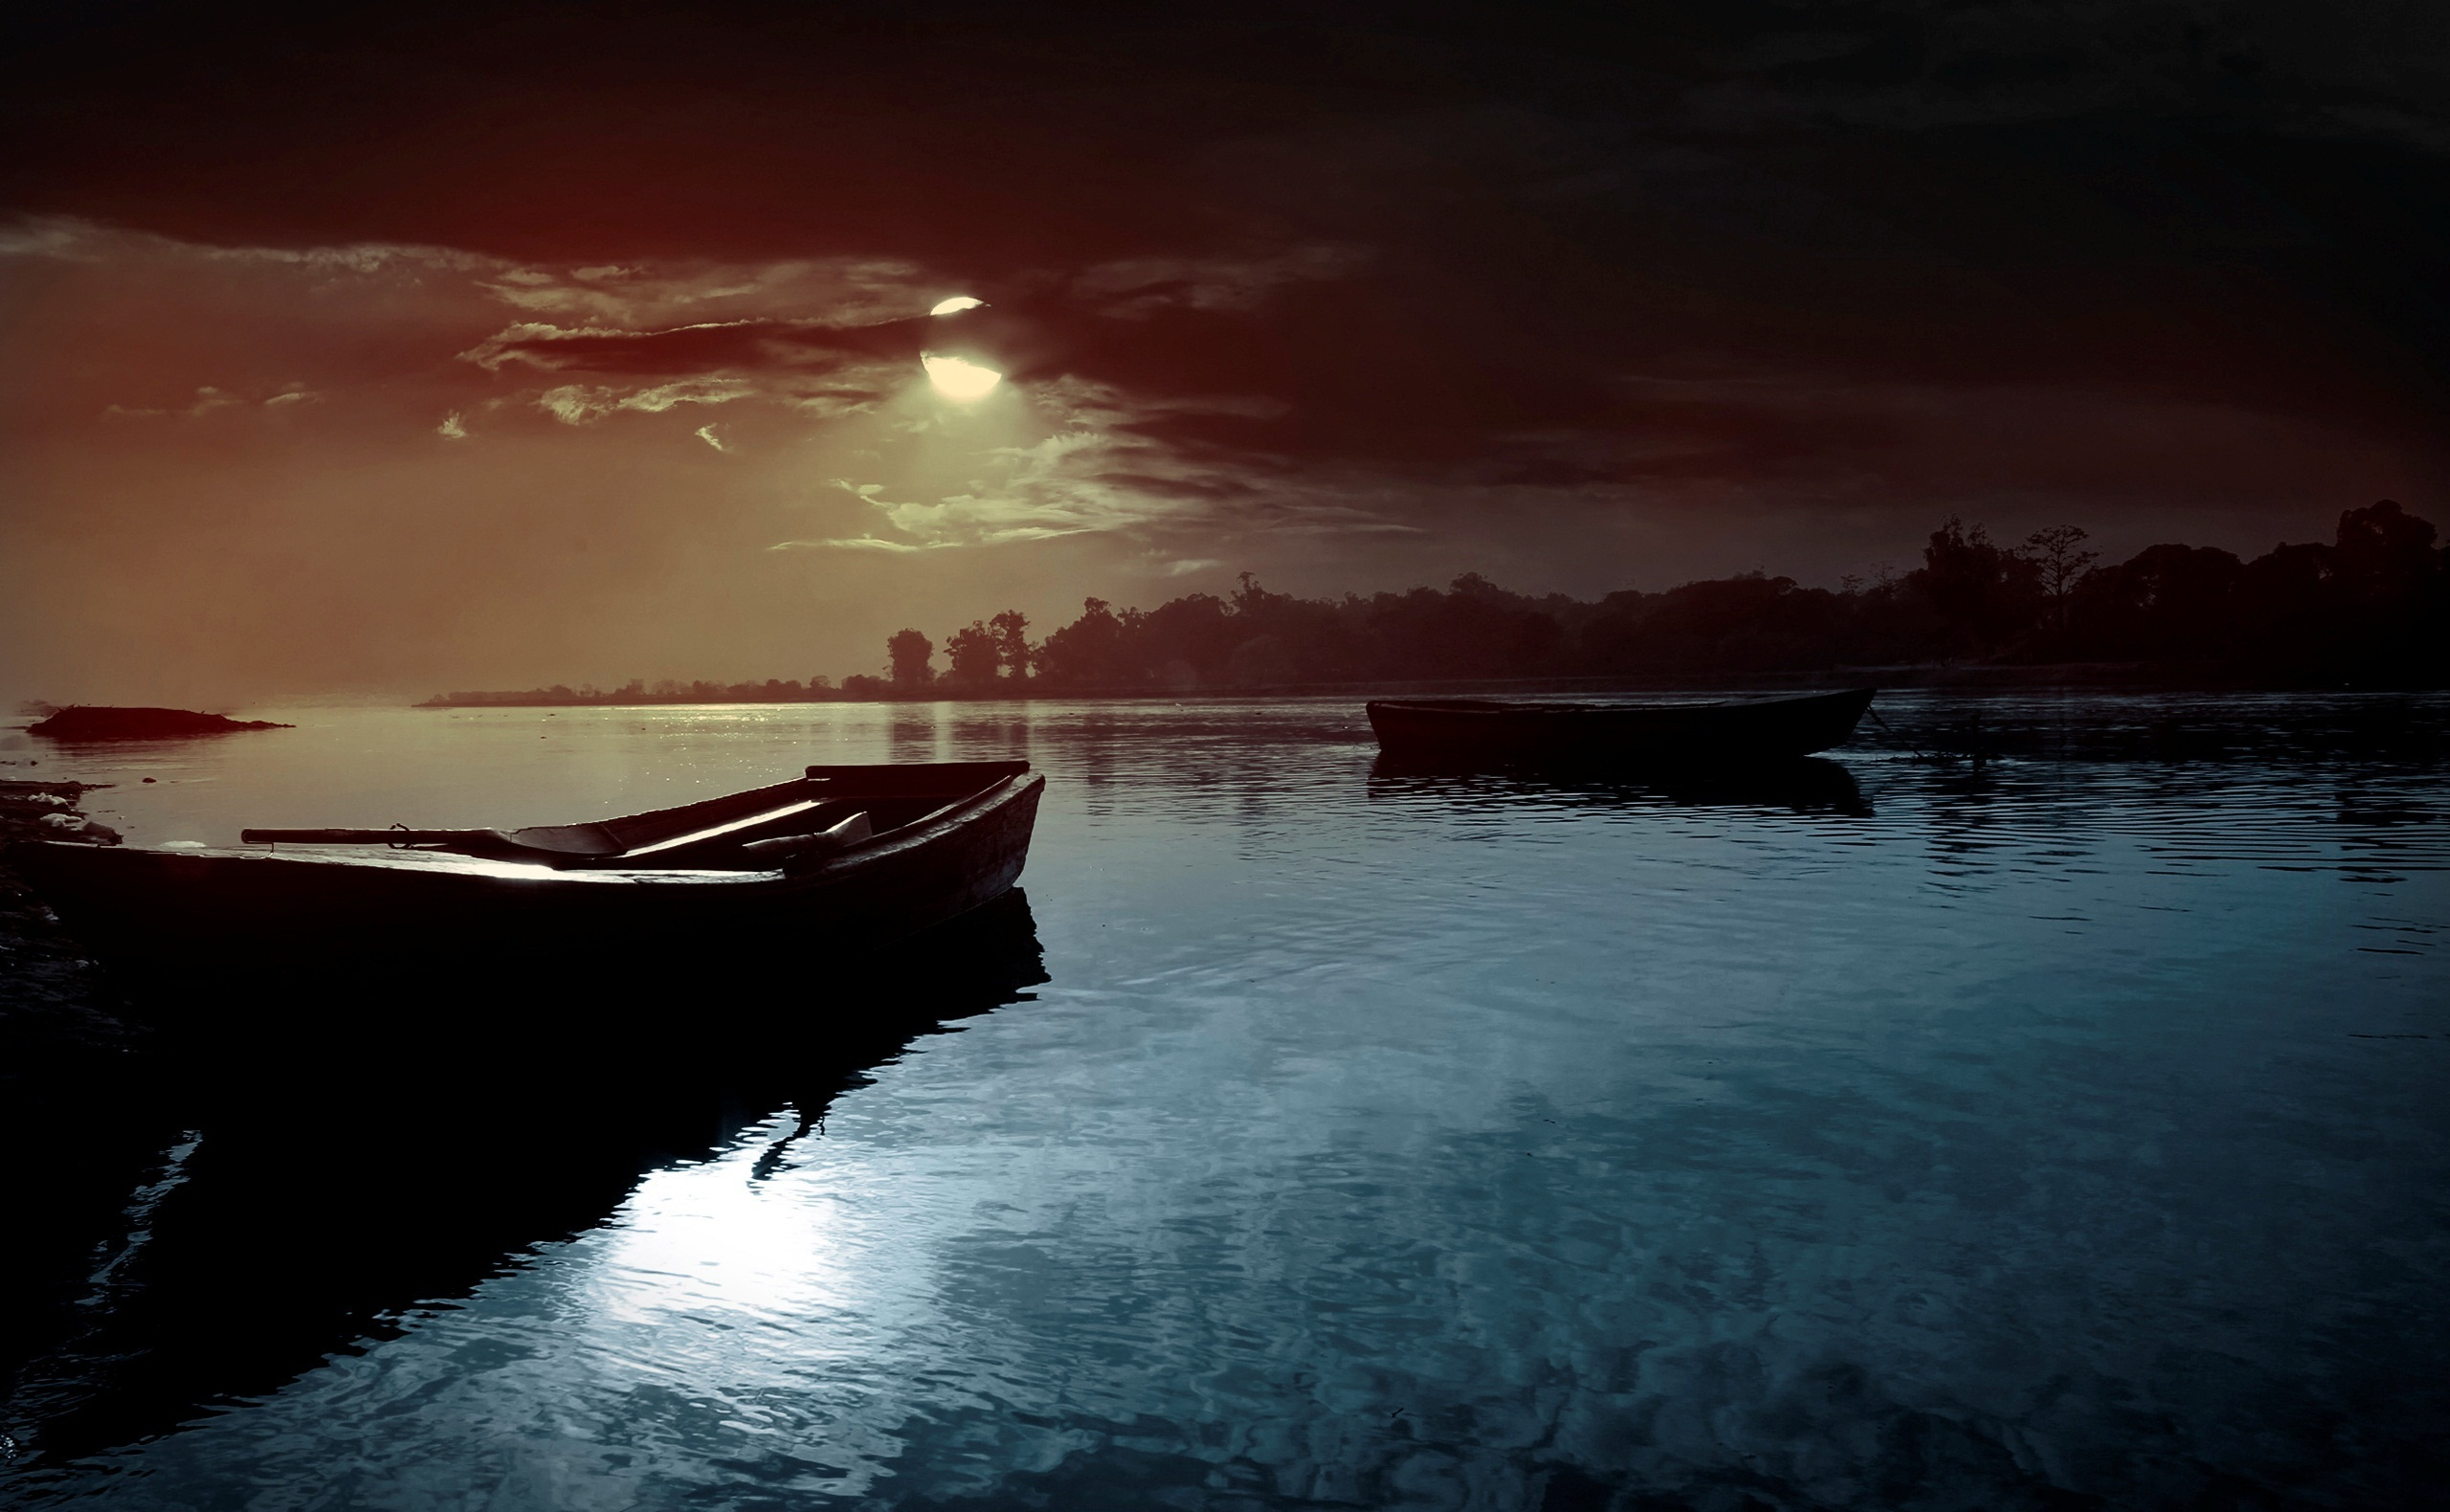 night moon boats on river wallpaper images picture